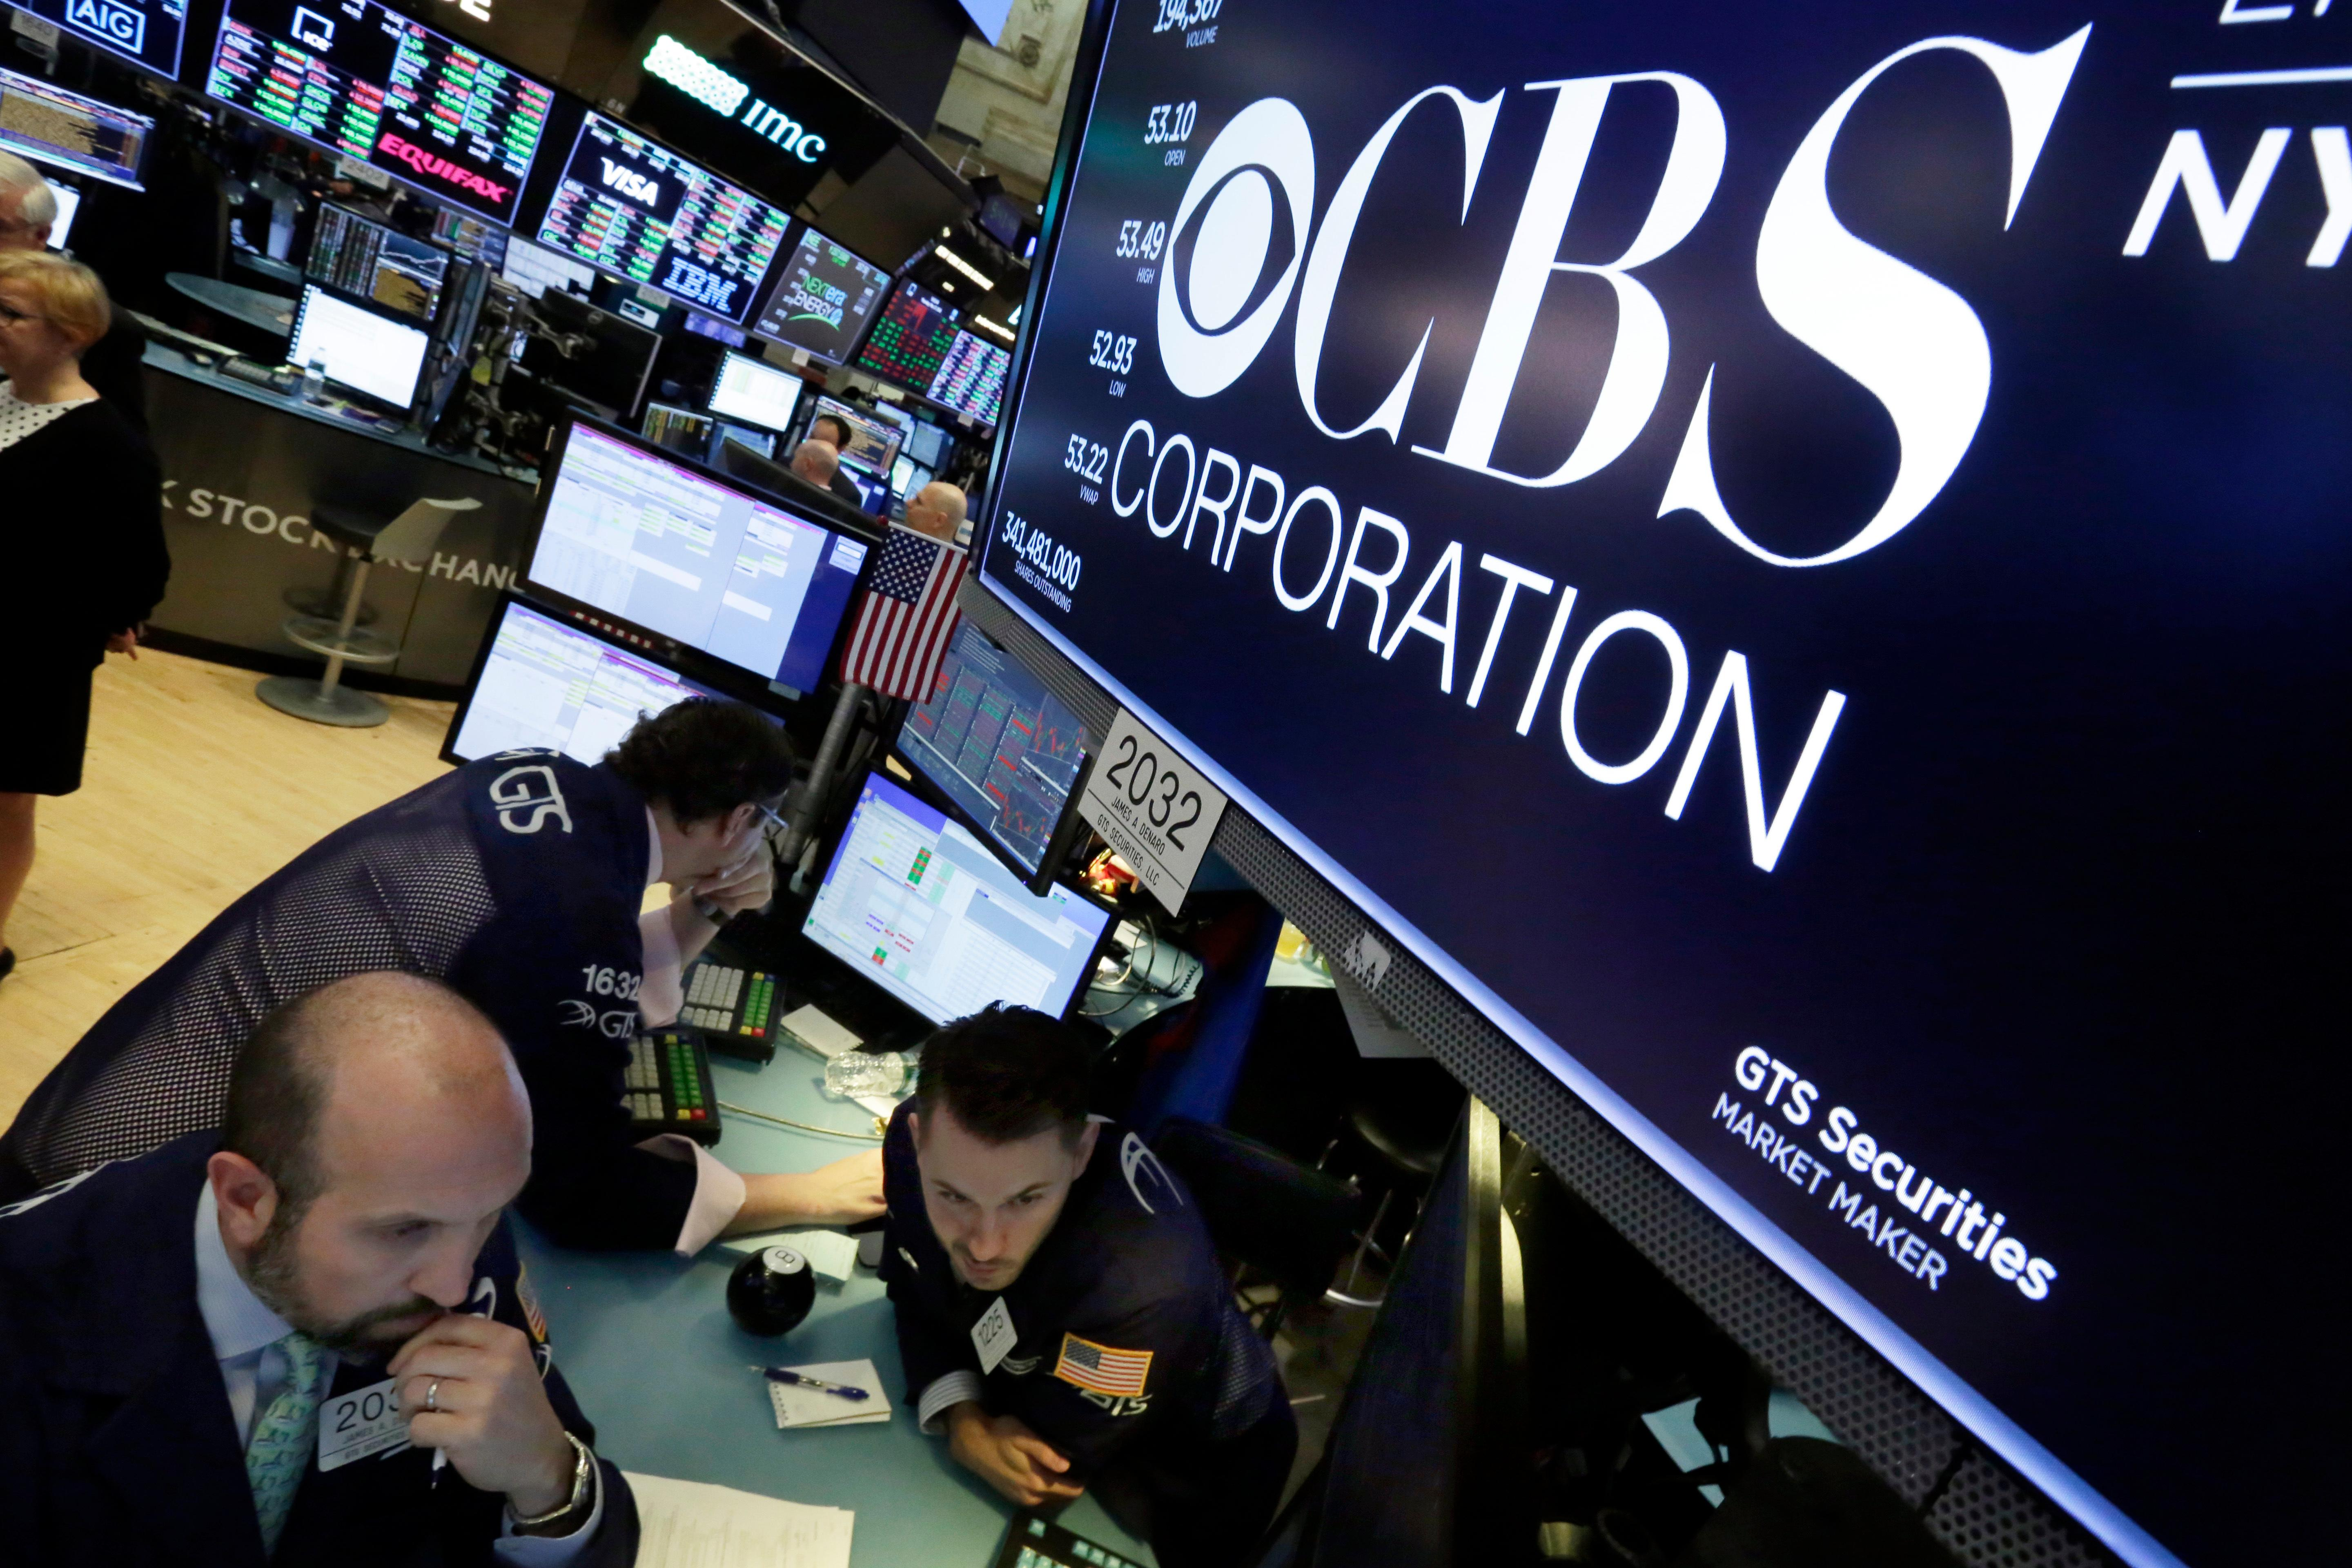 CBS stock price sinking on Les Moonves report about sexual misconduct recommendations